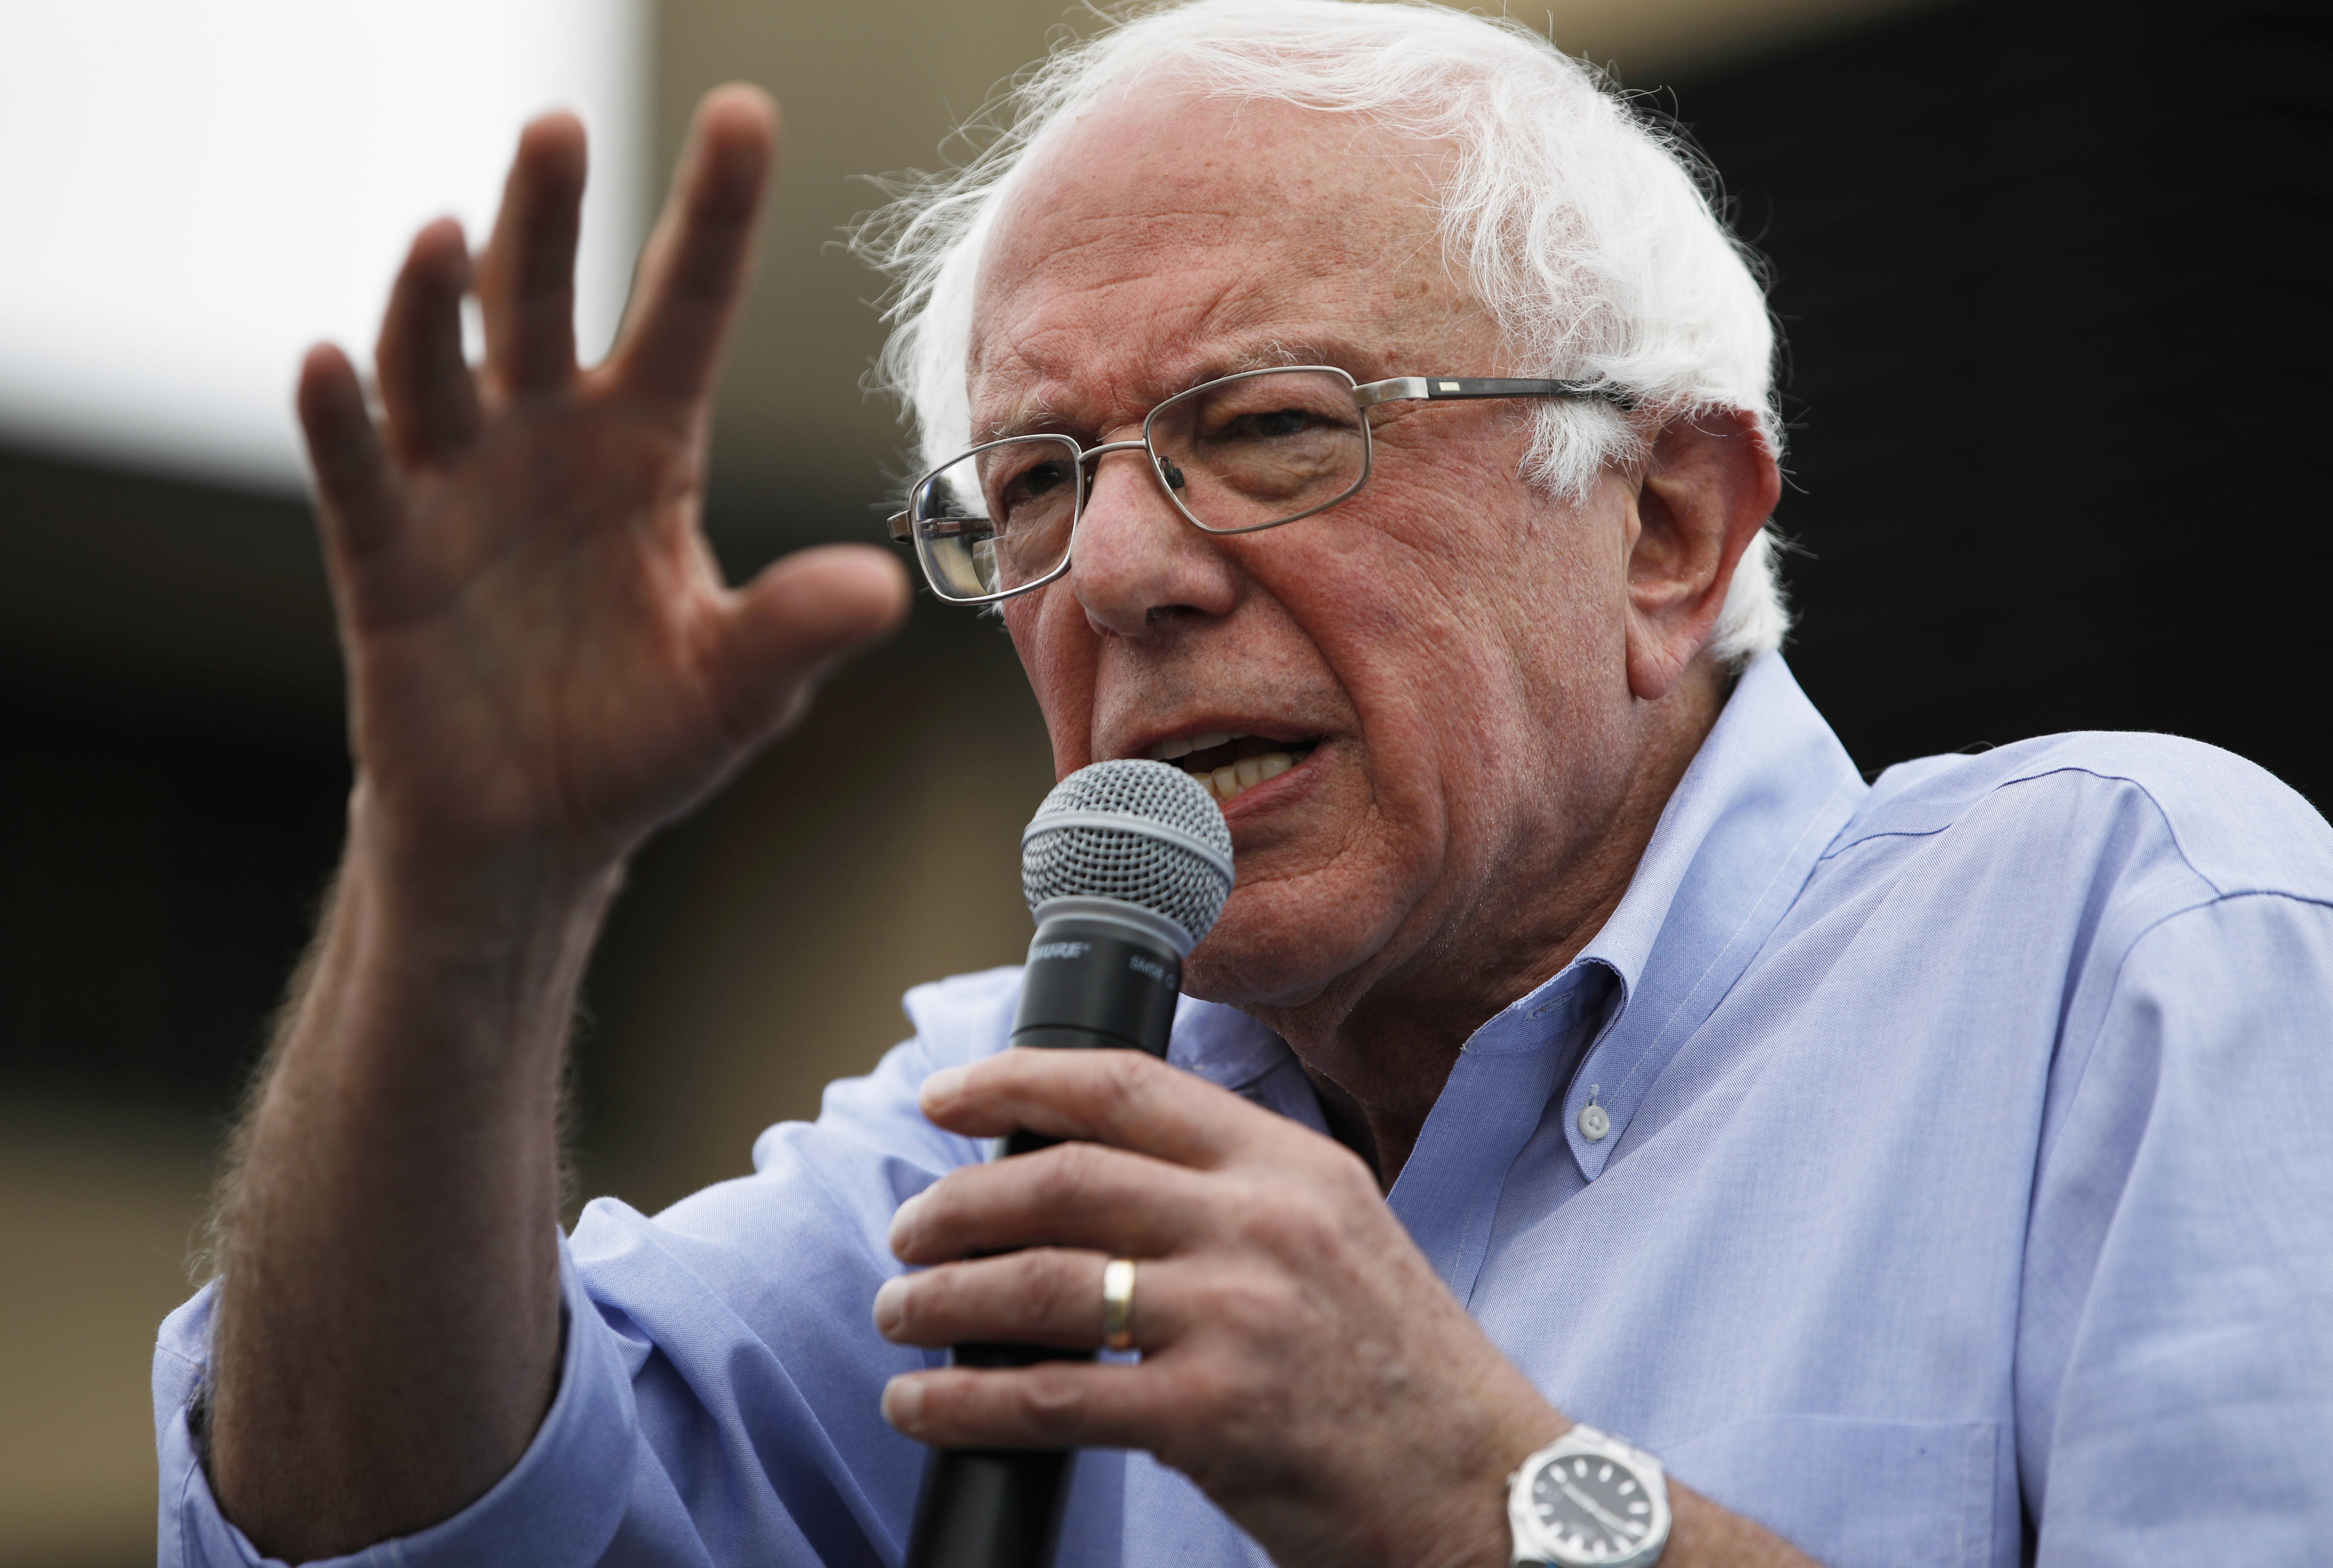 Bernie Sanders unveils $16.3 trillion Green New Deal that will 'pay for itself'